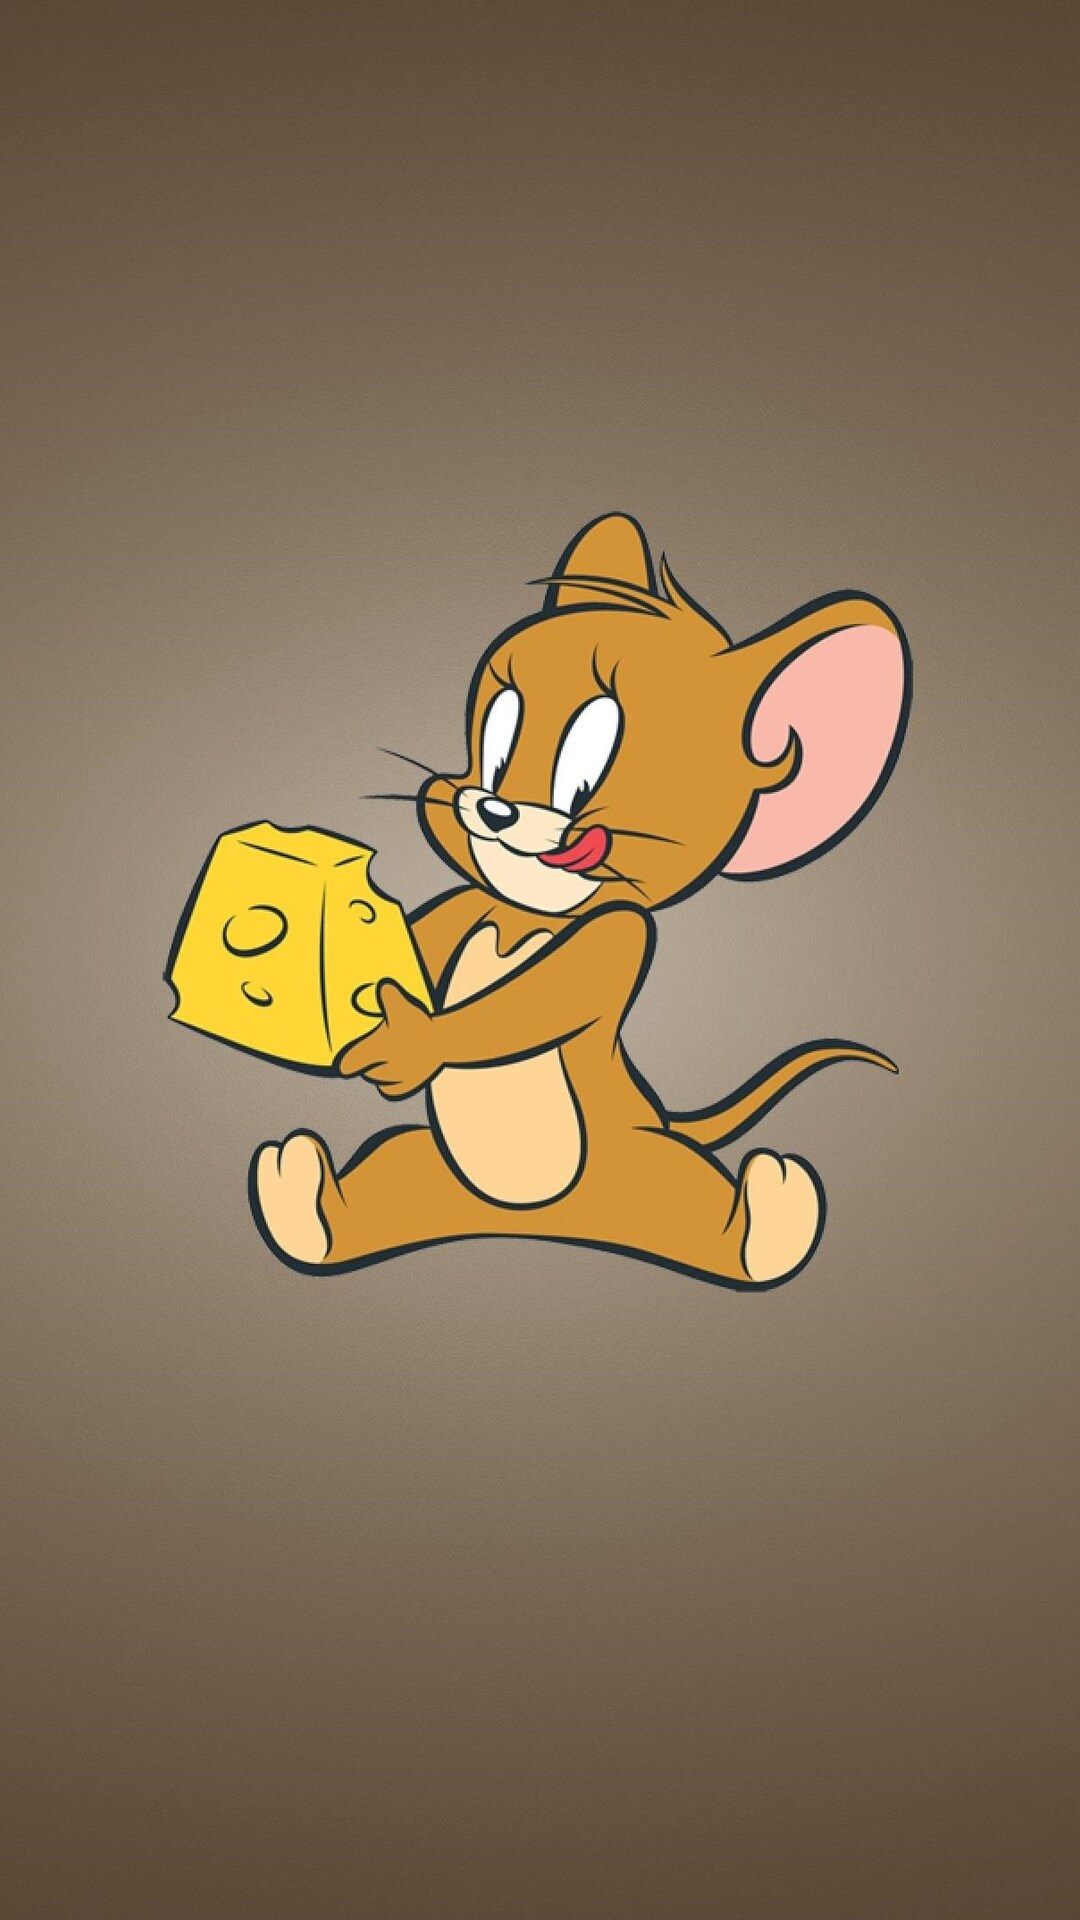 1080x1920 Tom and Jerry Iphone 7,6s,6 Plus, Pixel xl ,One ...